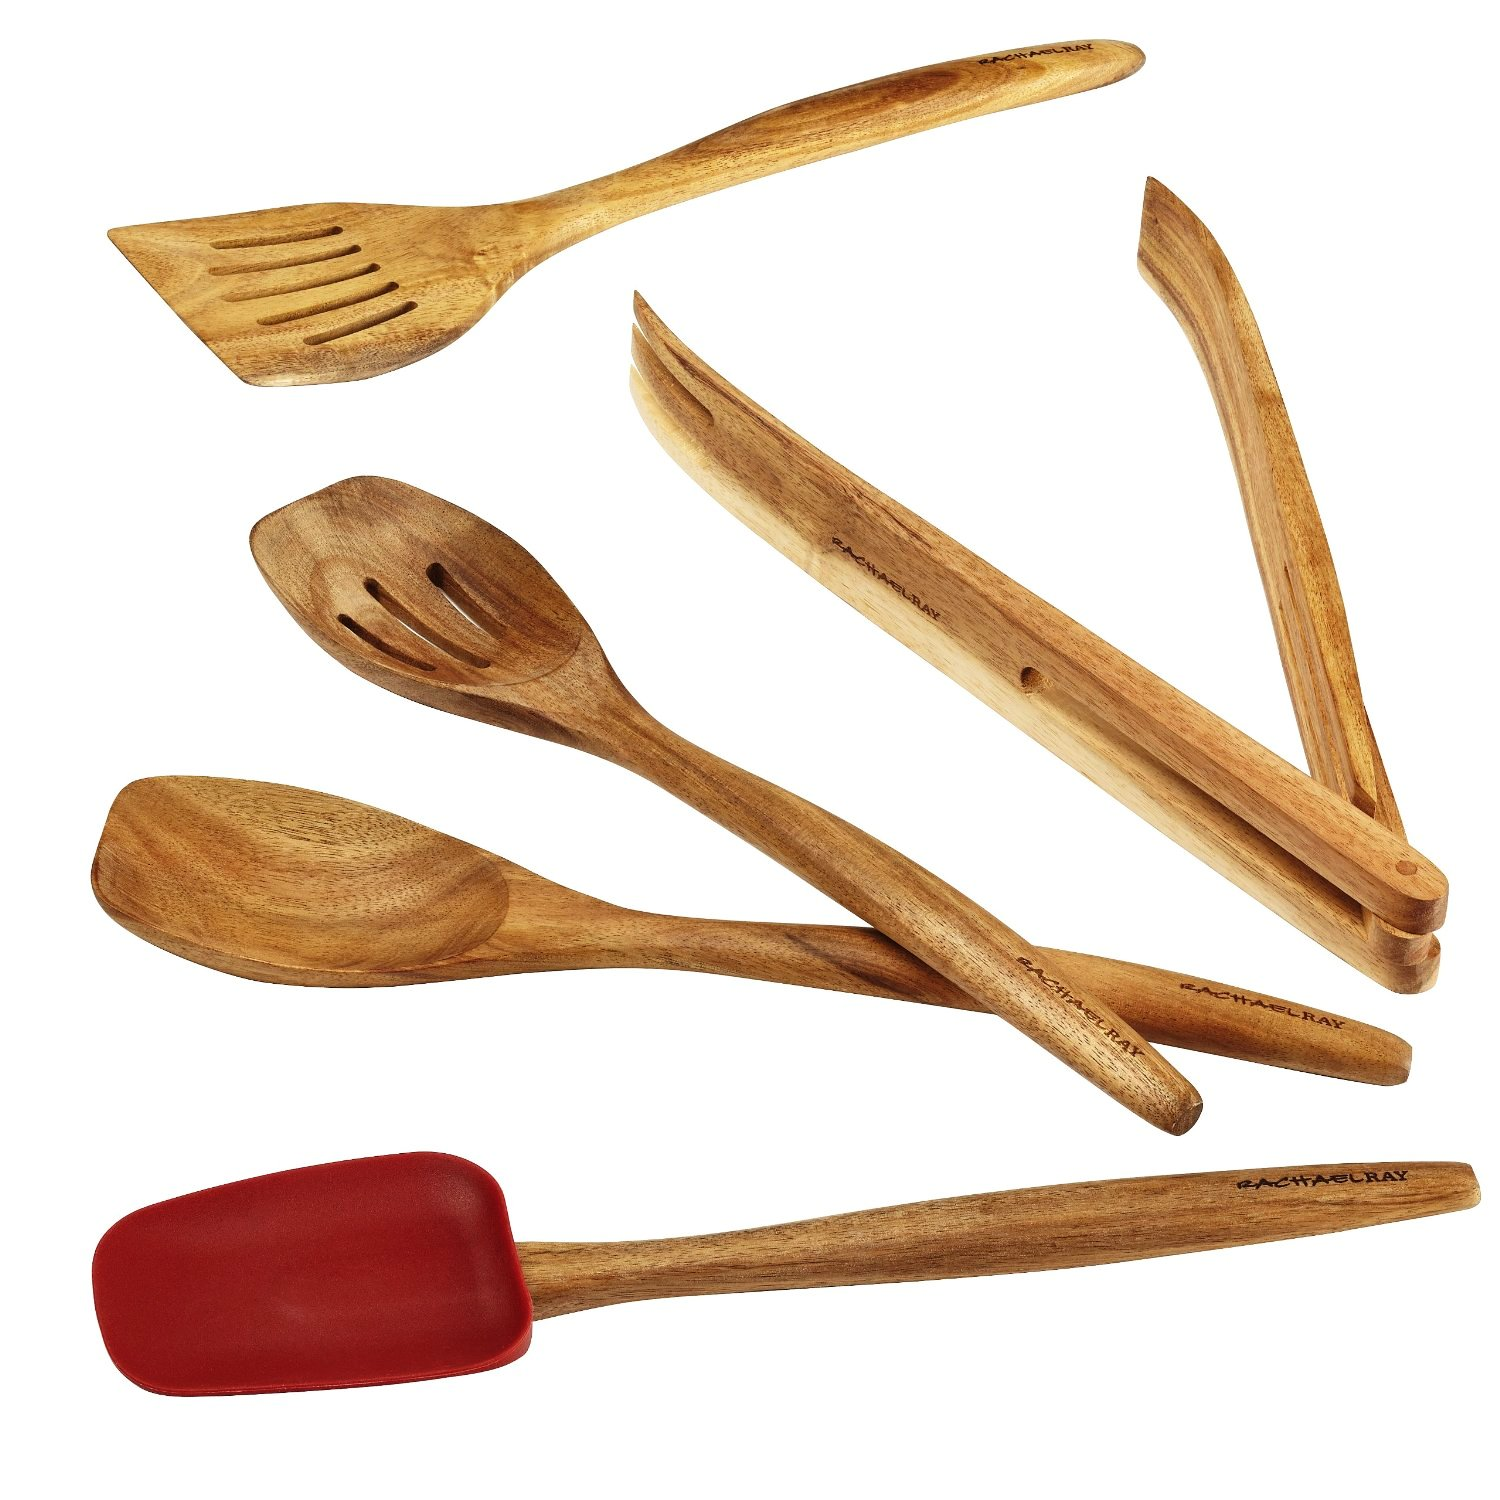 Rachael Ray Cucina Tools 5-Piece Wooden Tool Set, Red by Rachael Ray